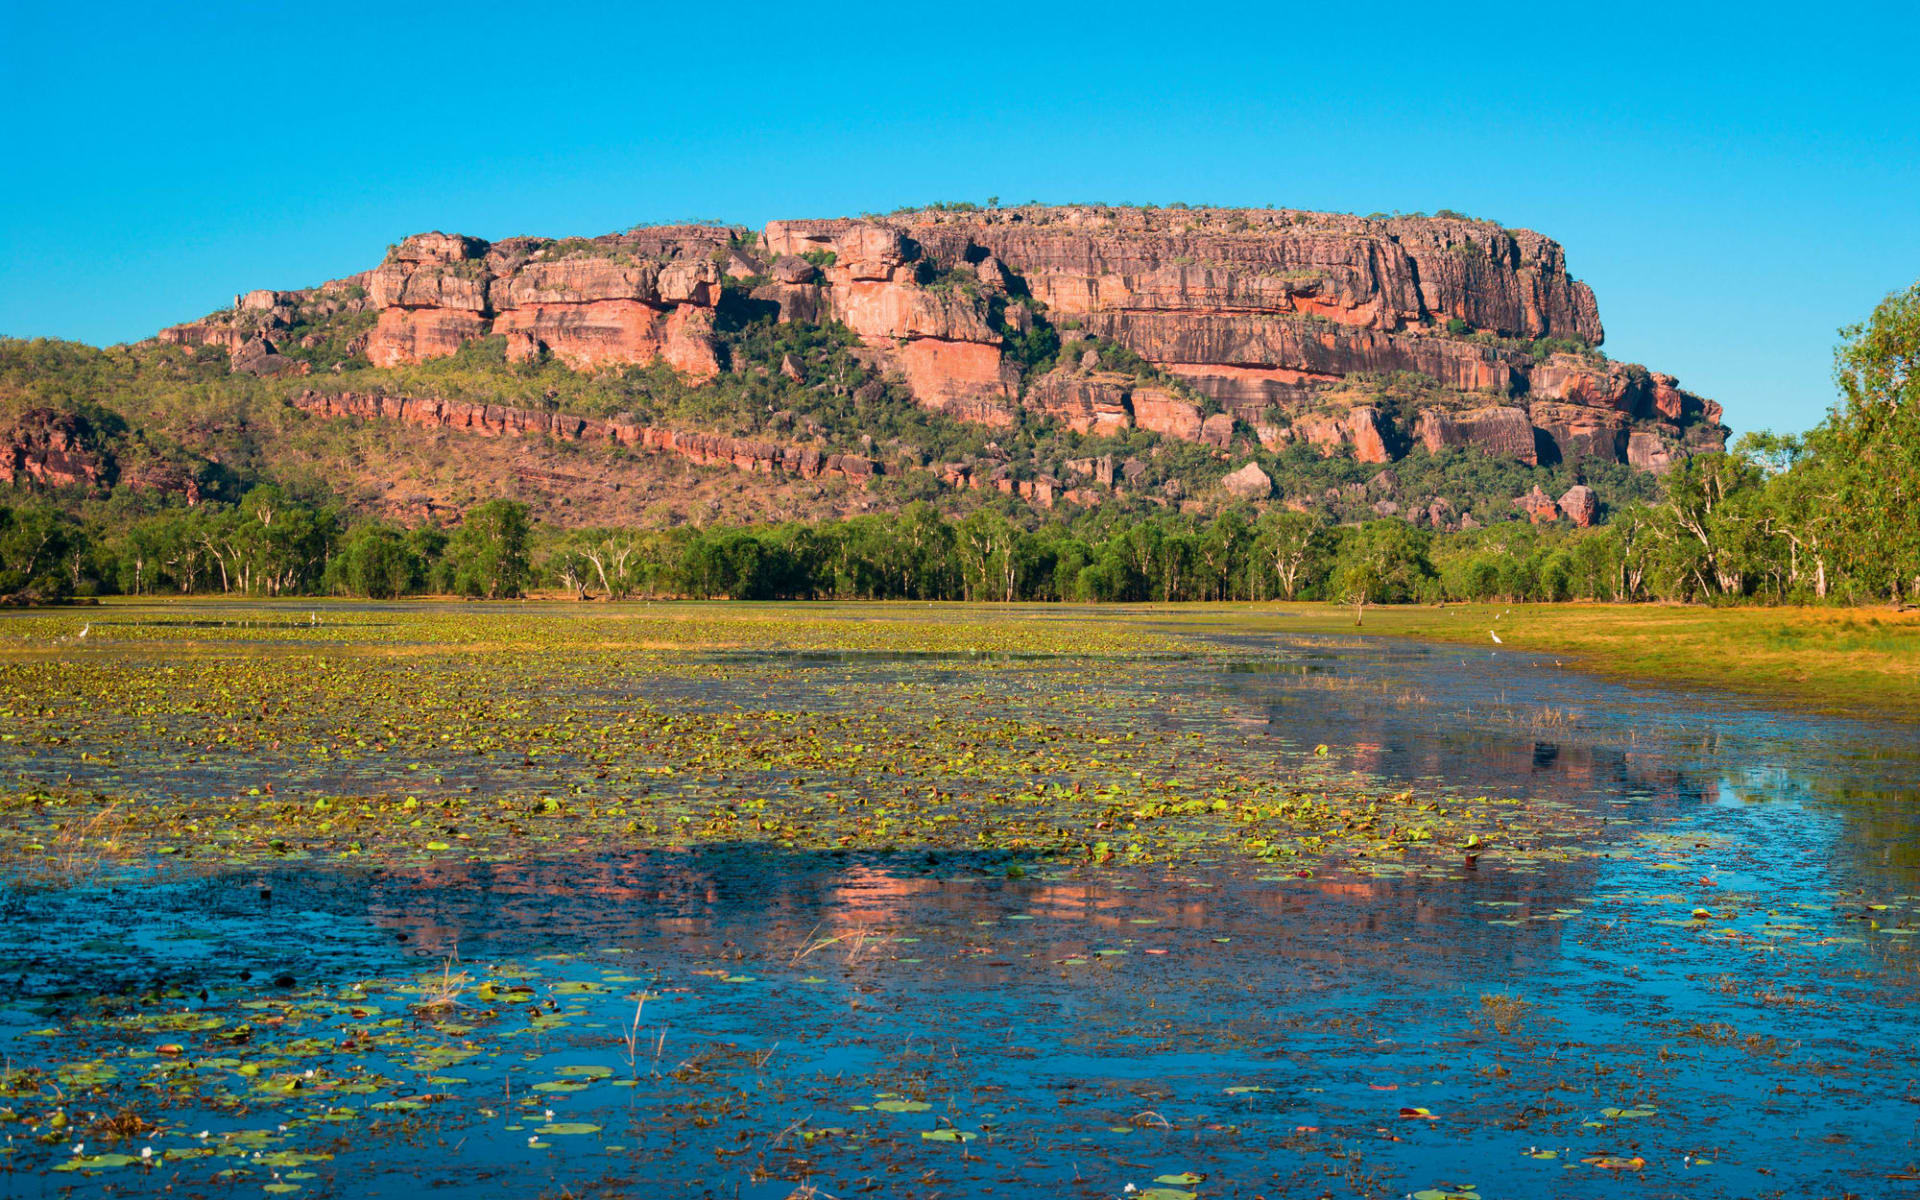 Kakadu & Litchfield National Parks (AAT Kings) ab Darwin: Kakadu National Park - Nourlangie Rock